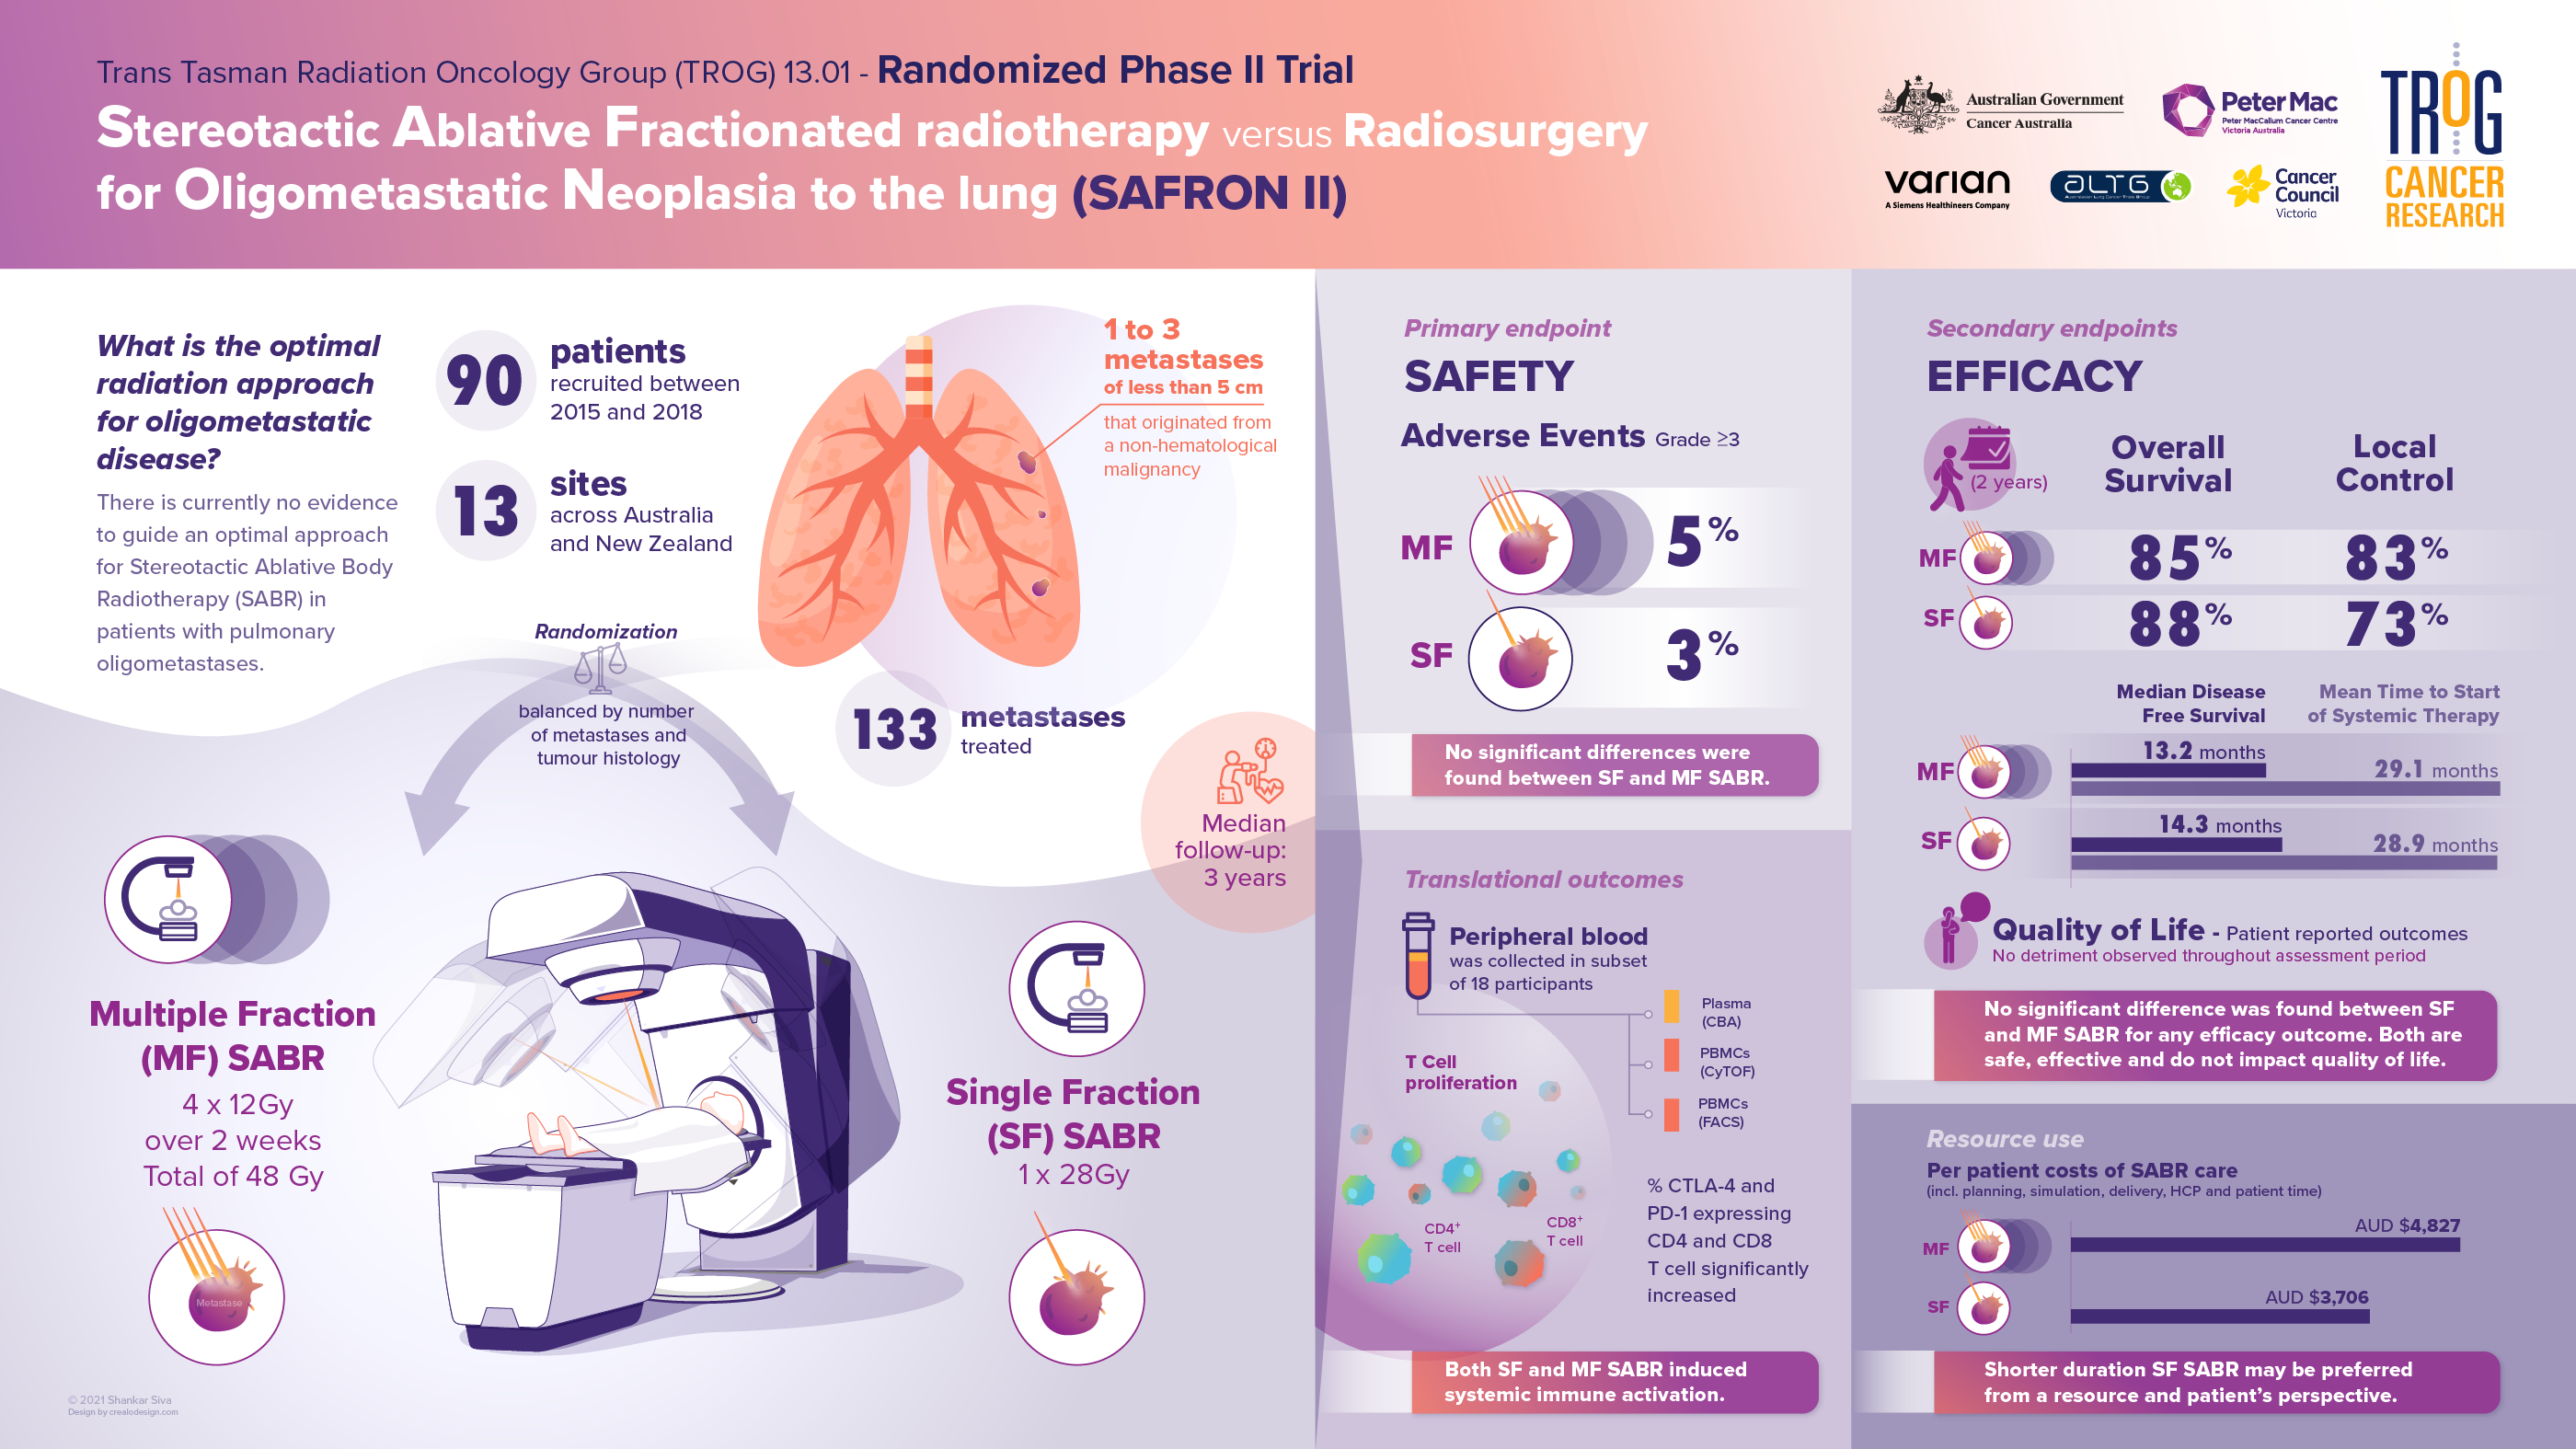 Oncology research infographic - Clinical trial outcomes